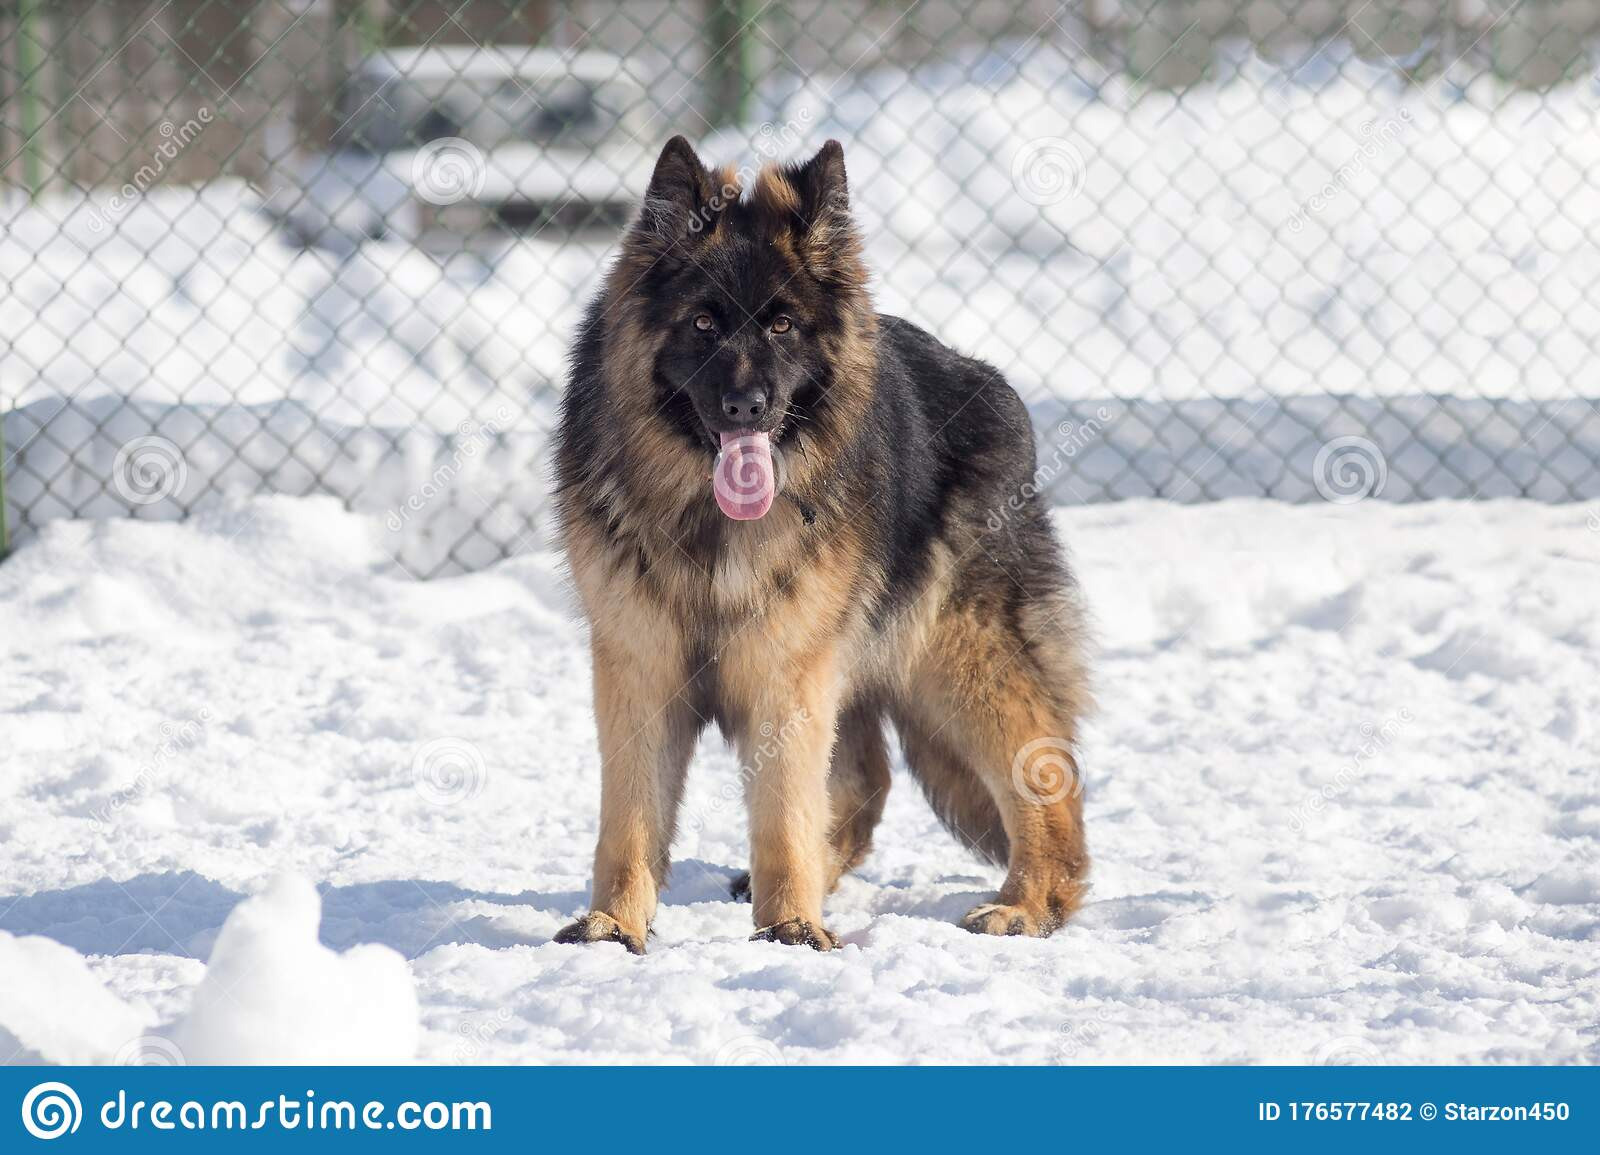 Long Haired German Shepherd Dog Puppy Is Looking At The Camera Pet Animals Stock Photo Image Of Cute Muzzle 176577482